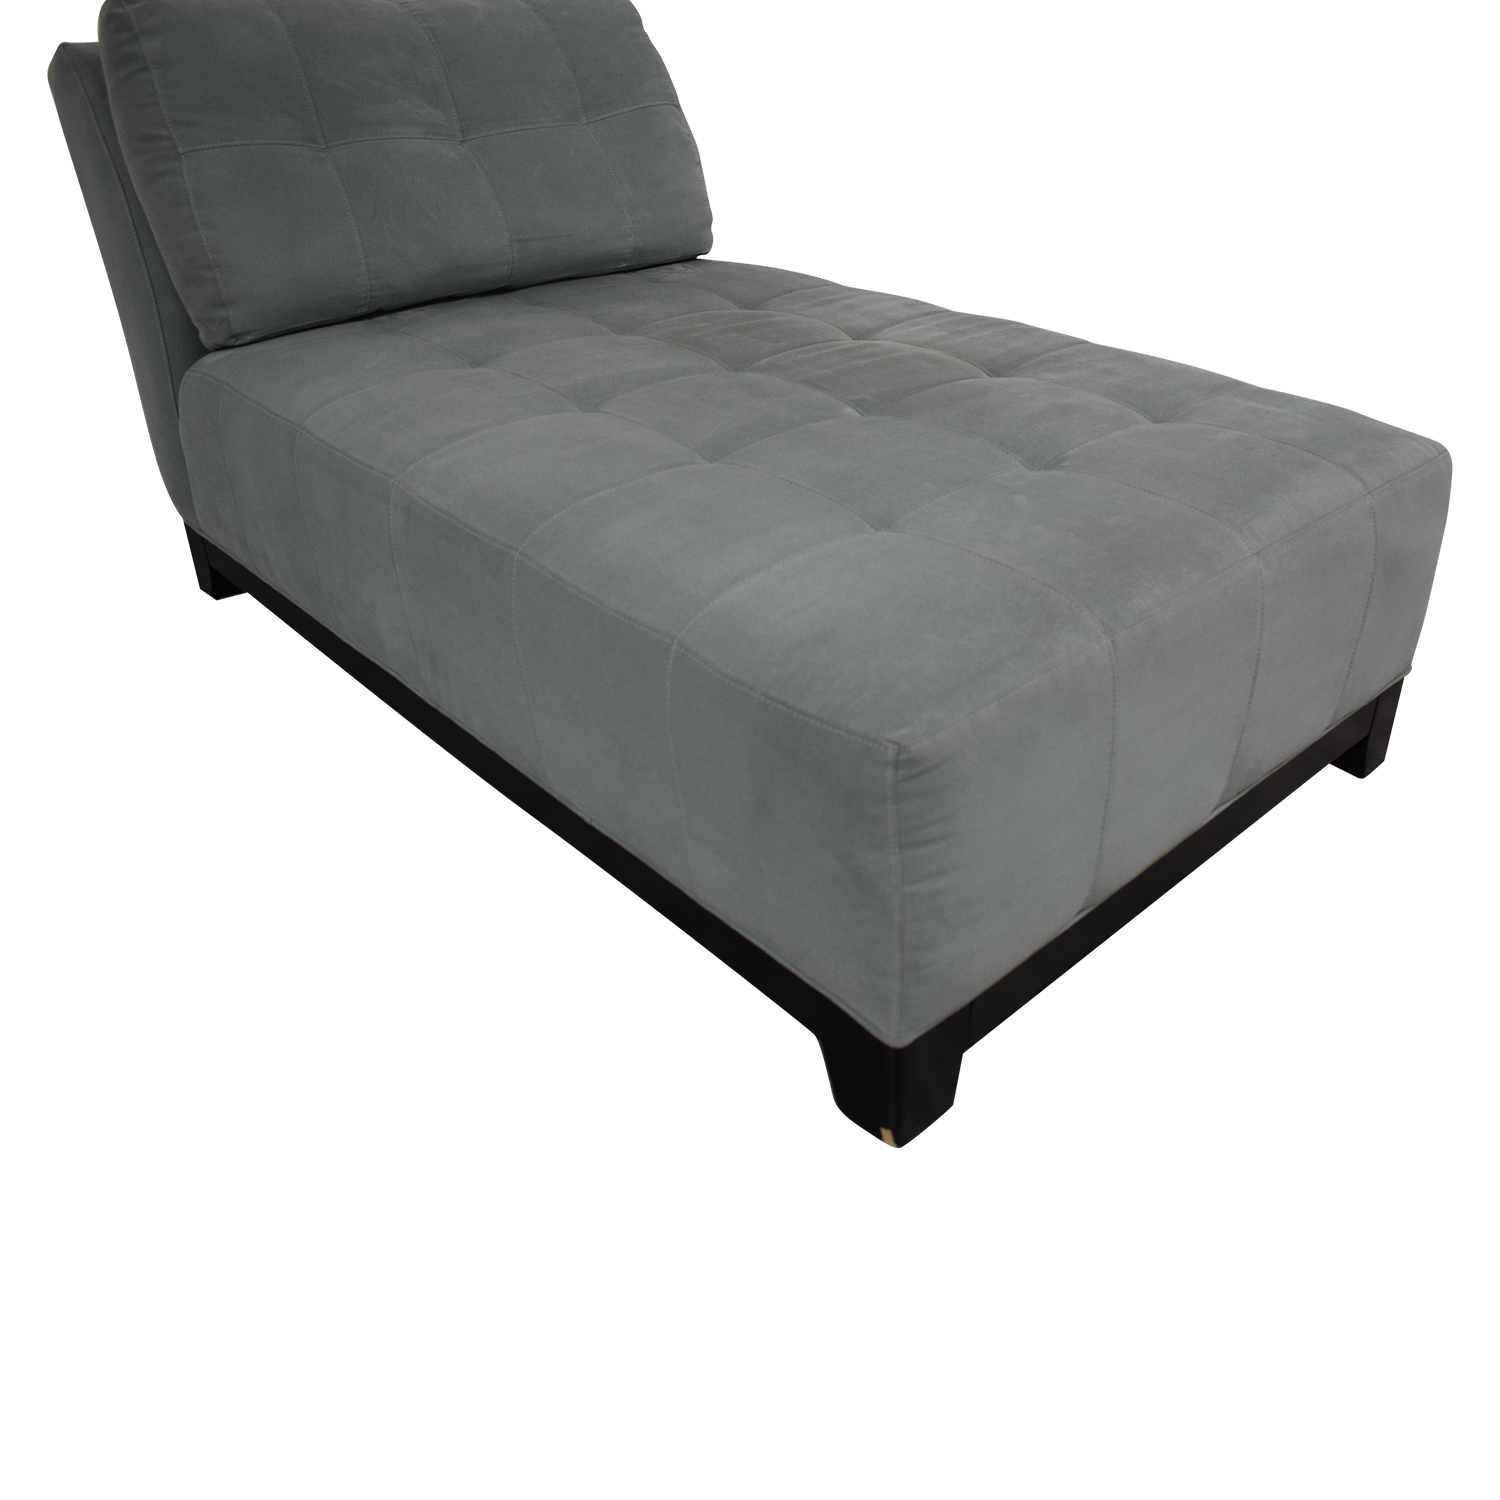 HM Richards Furniture HM Richards Furniture Chaise Lounge Gray